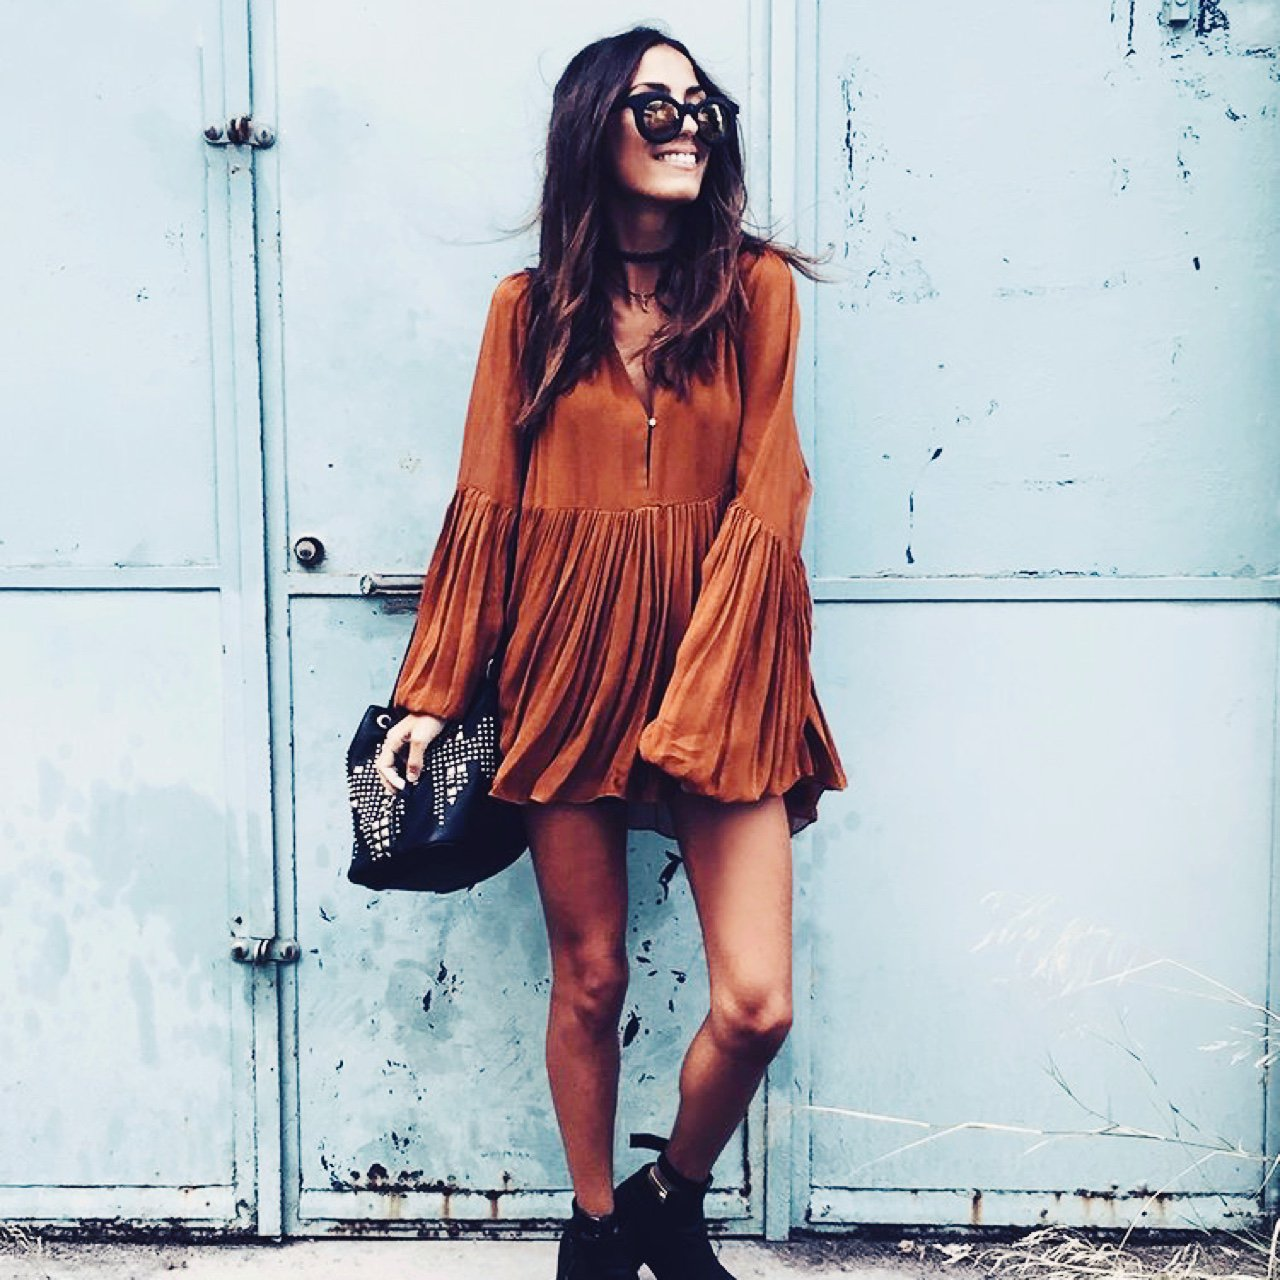 Chic Finds: Online Shopping Guide to the Latest Fashion Bohemian chic fashions shoes